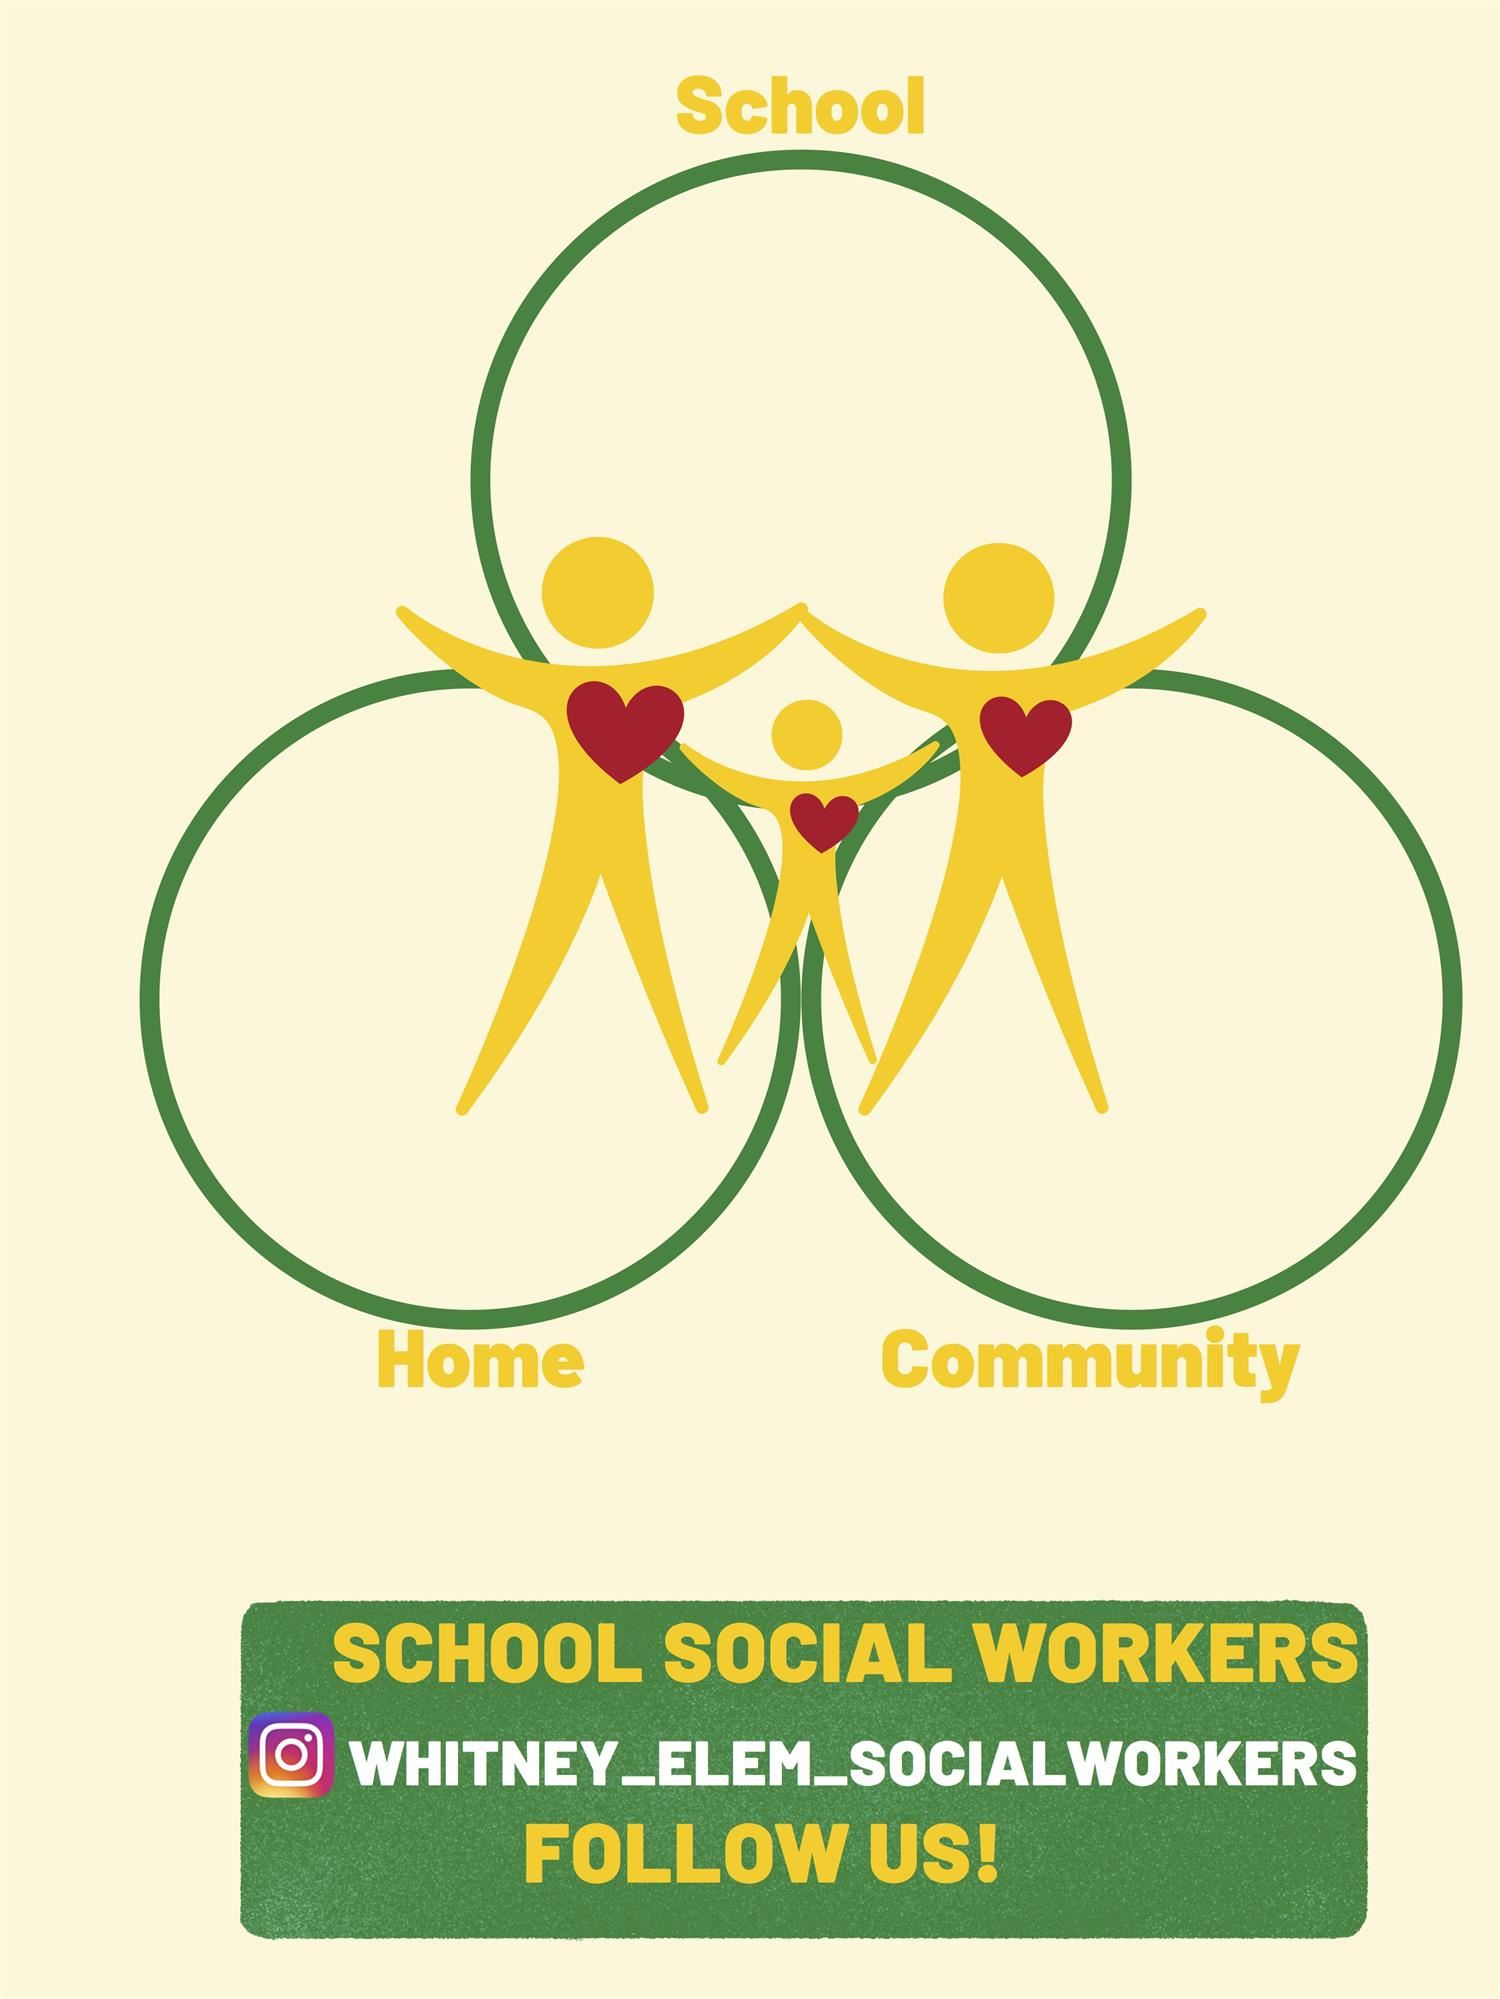 Find out how to stay connected with our MTSS Social Workers